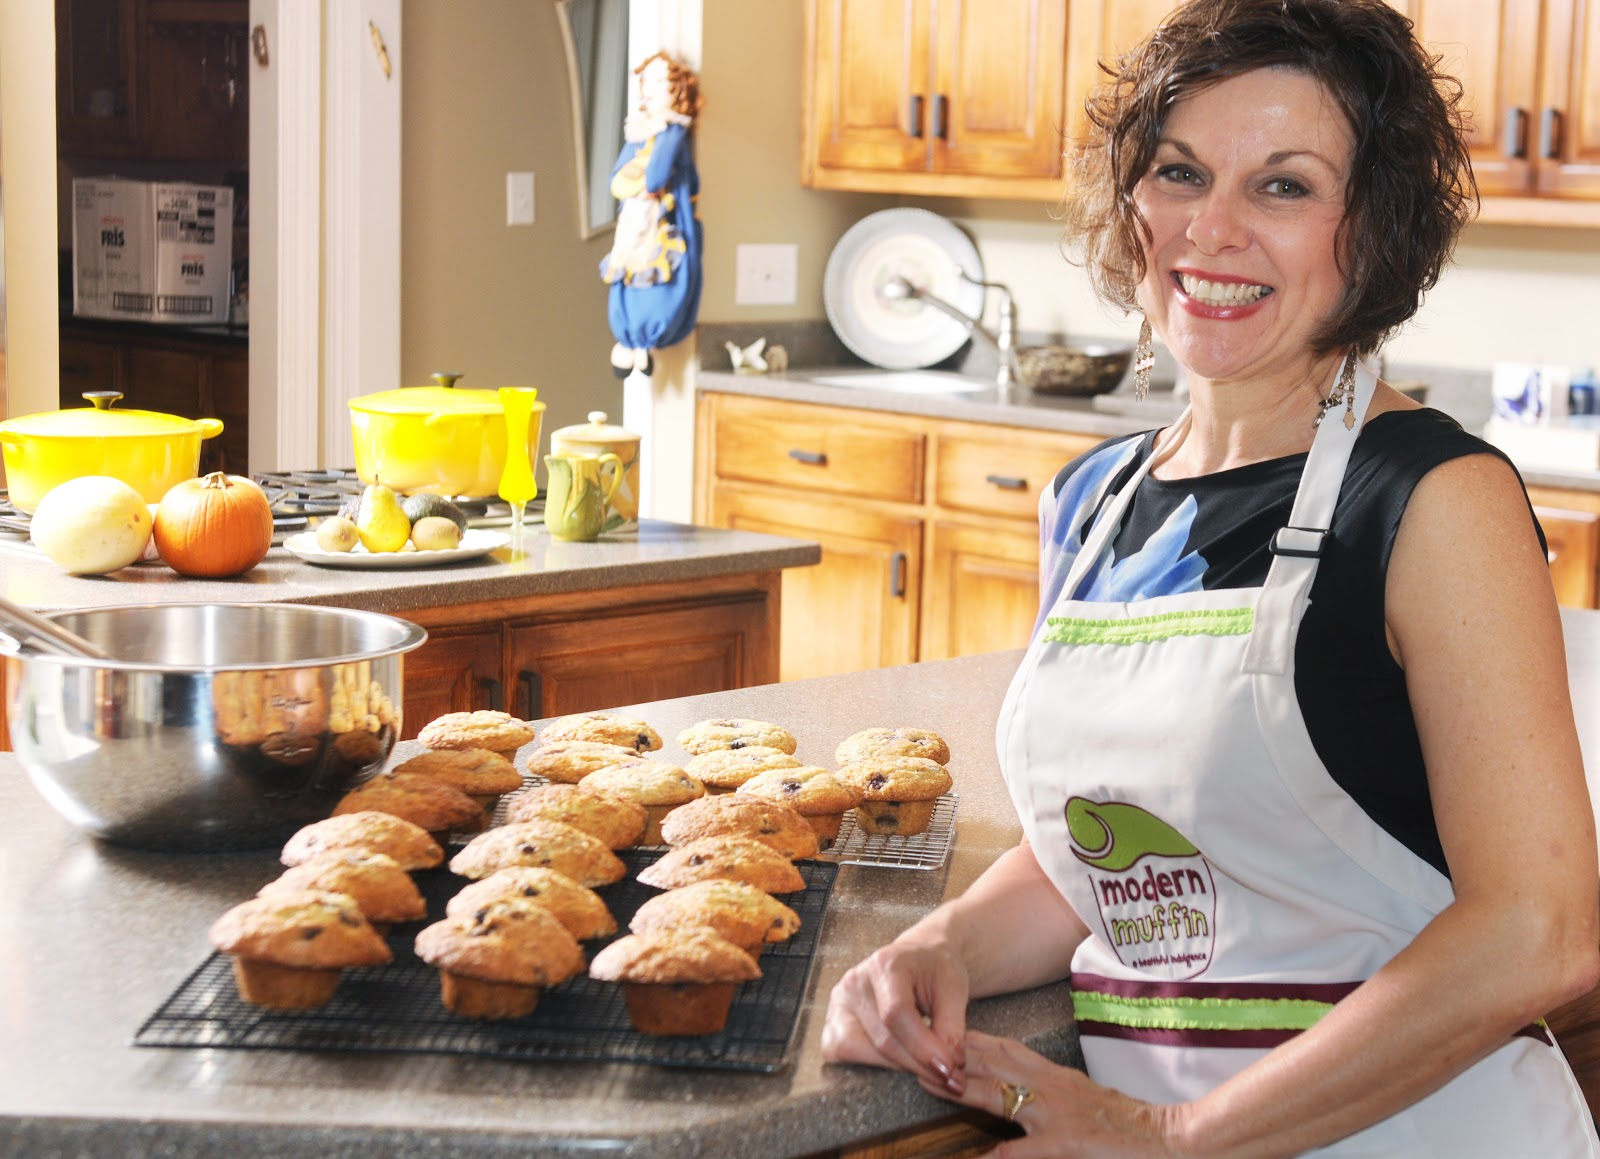 Modern Muffin founder Claire Putterman.